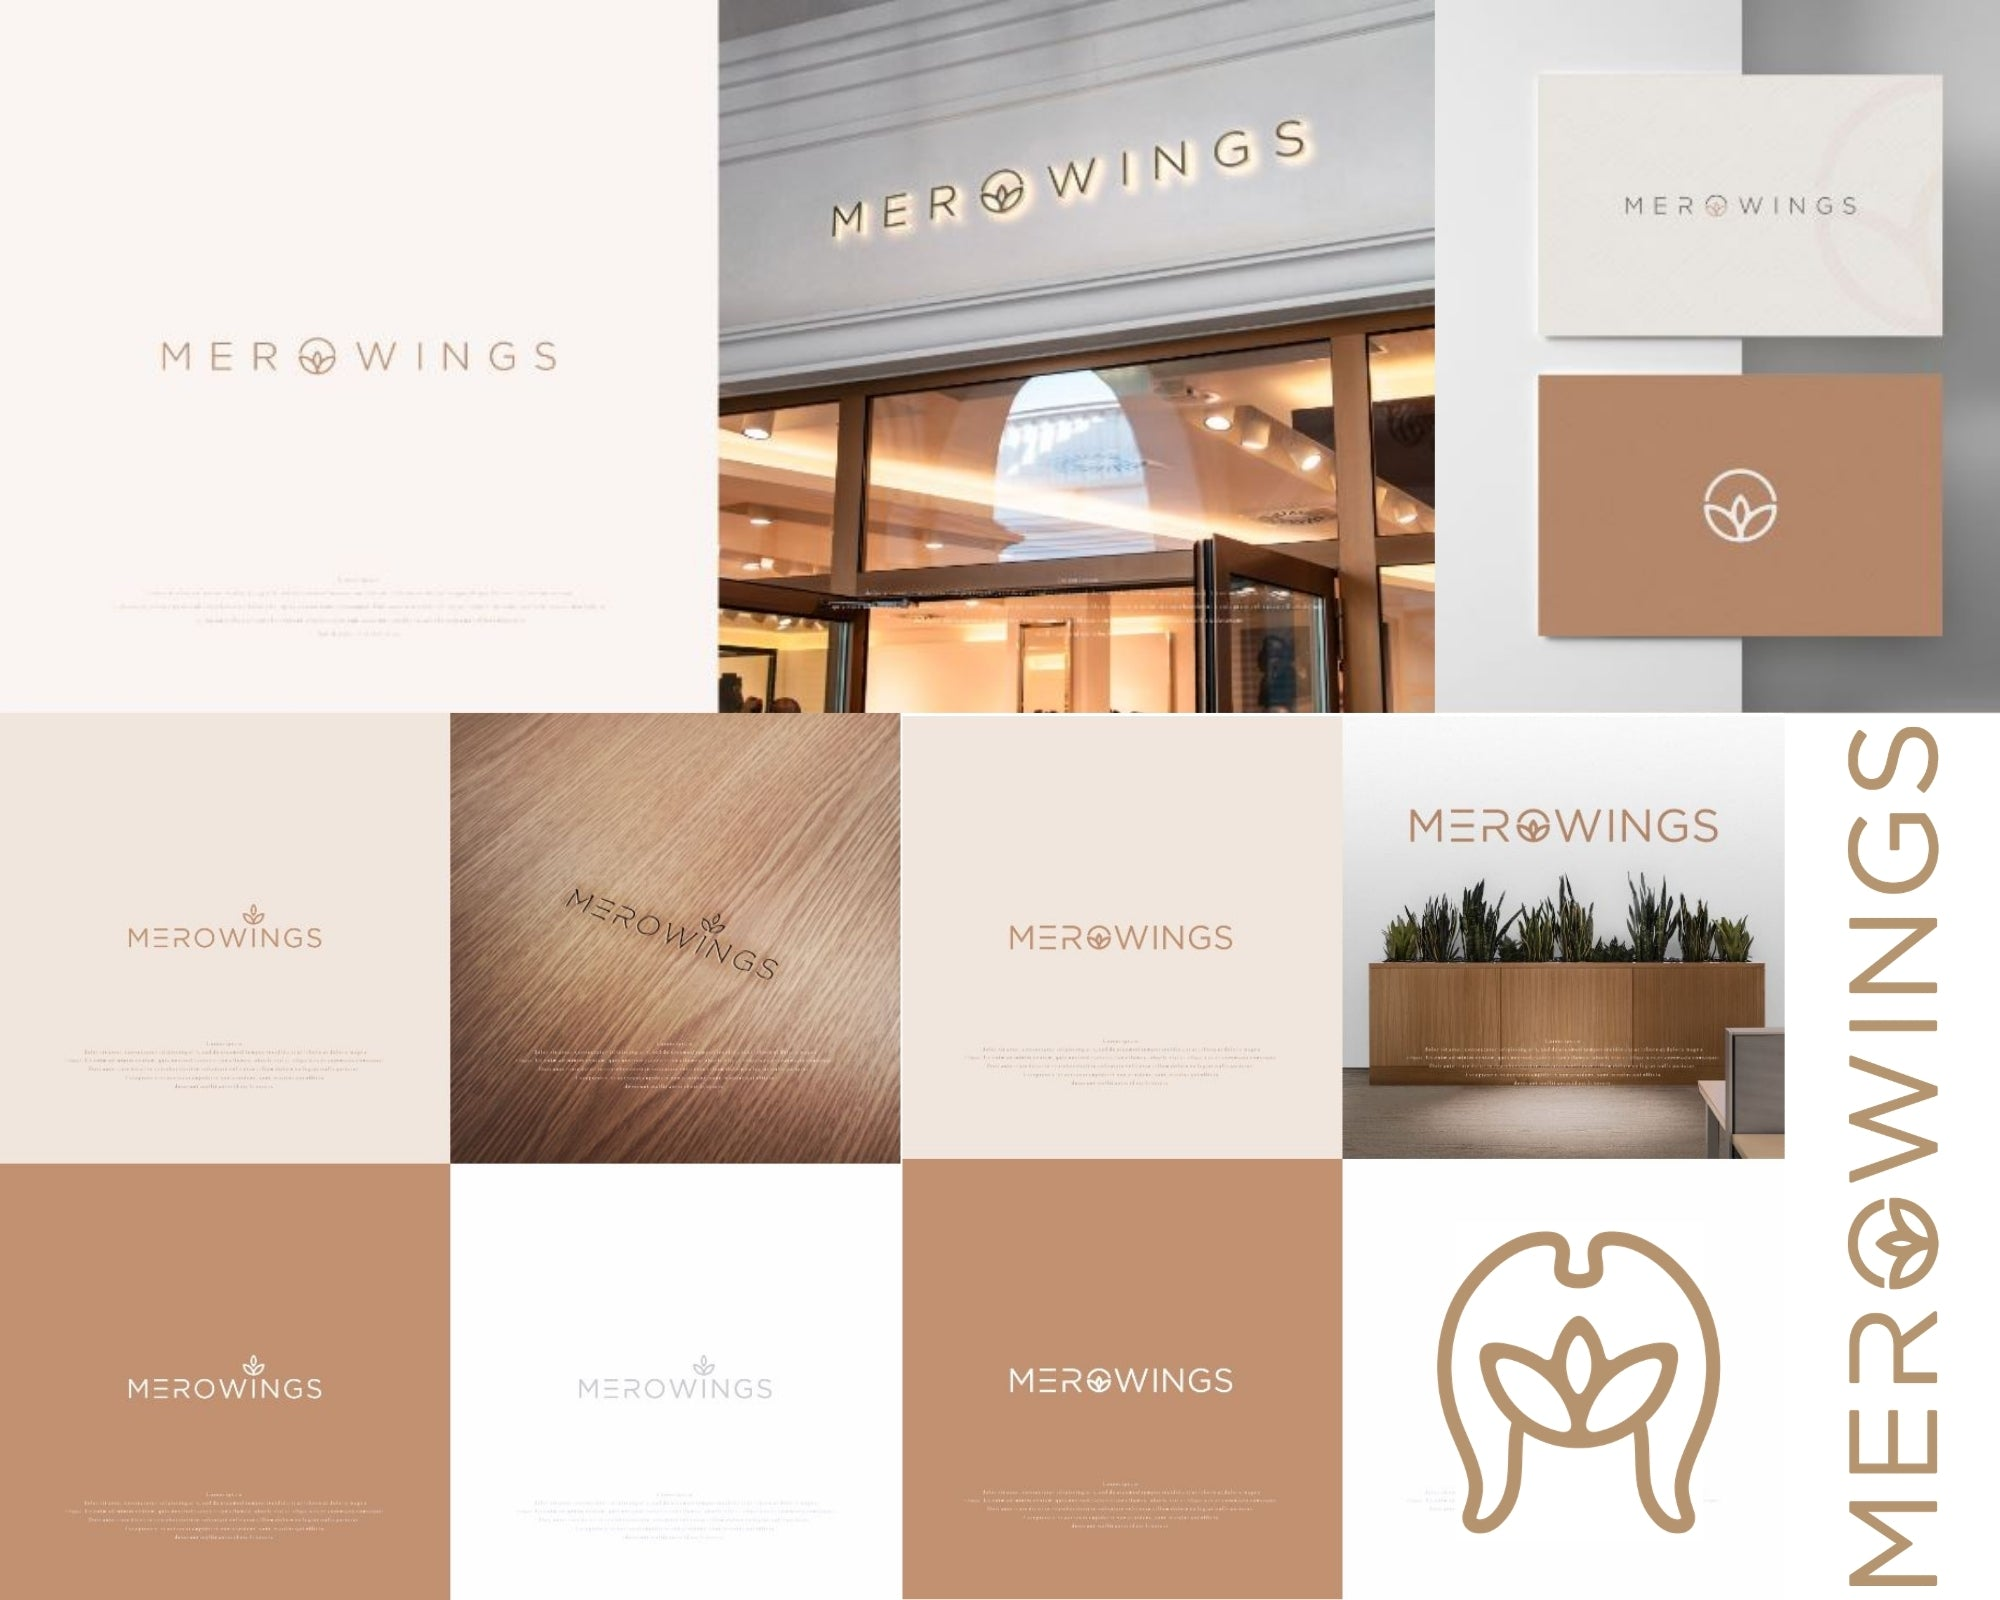 The evolution of the MeroWings logo